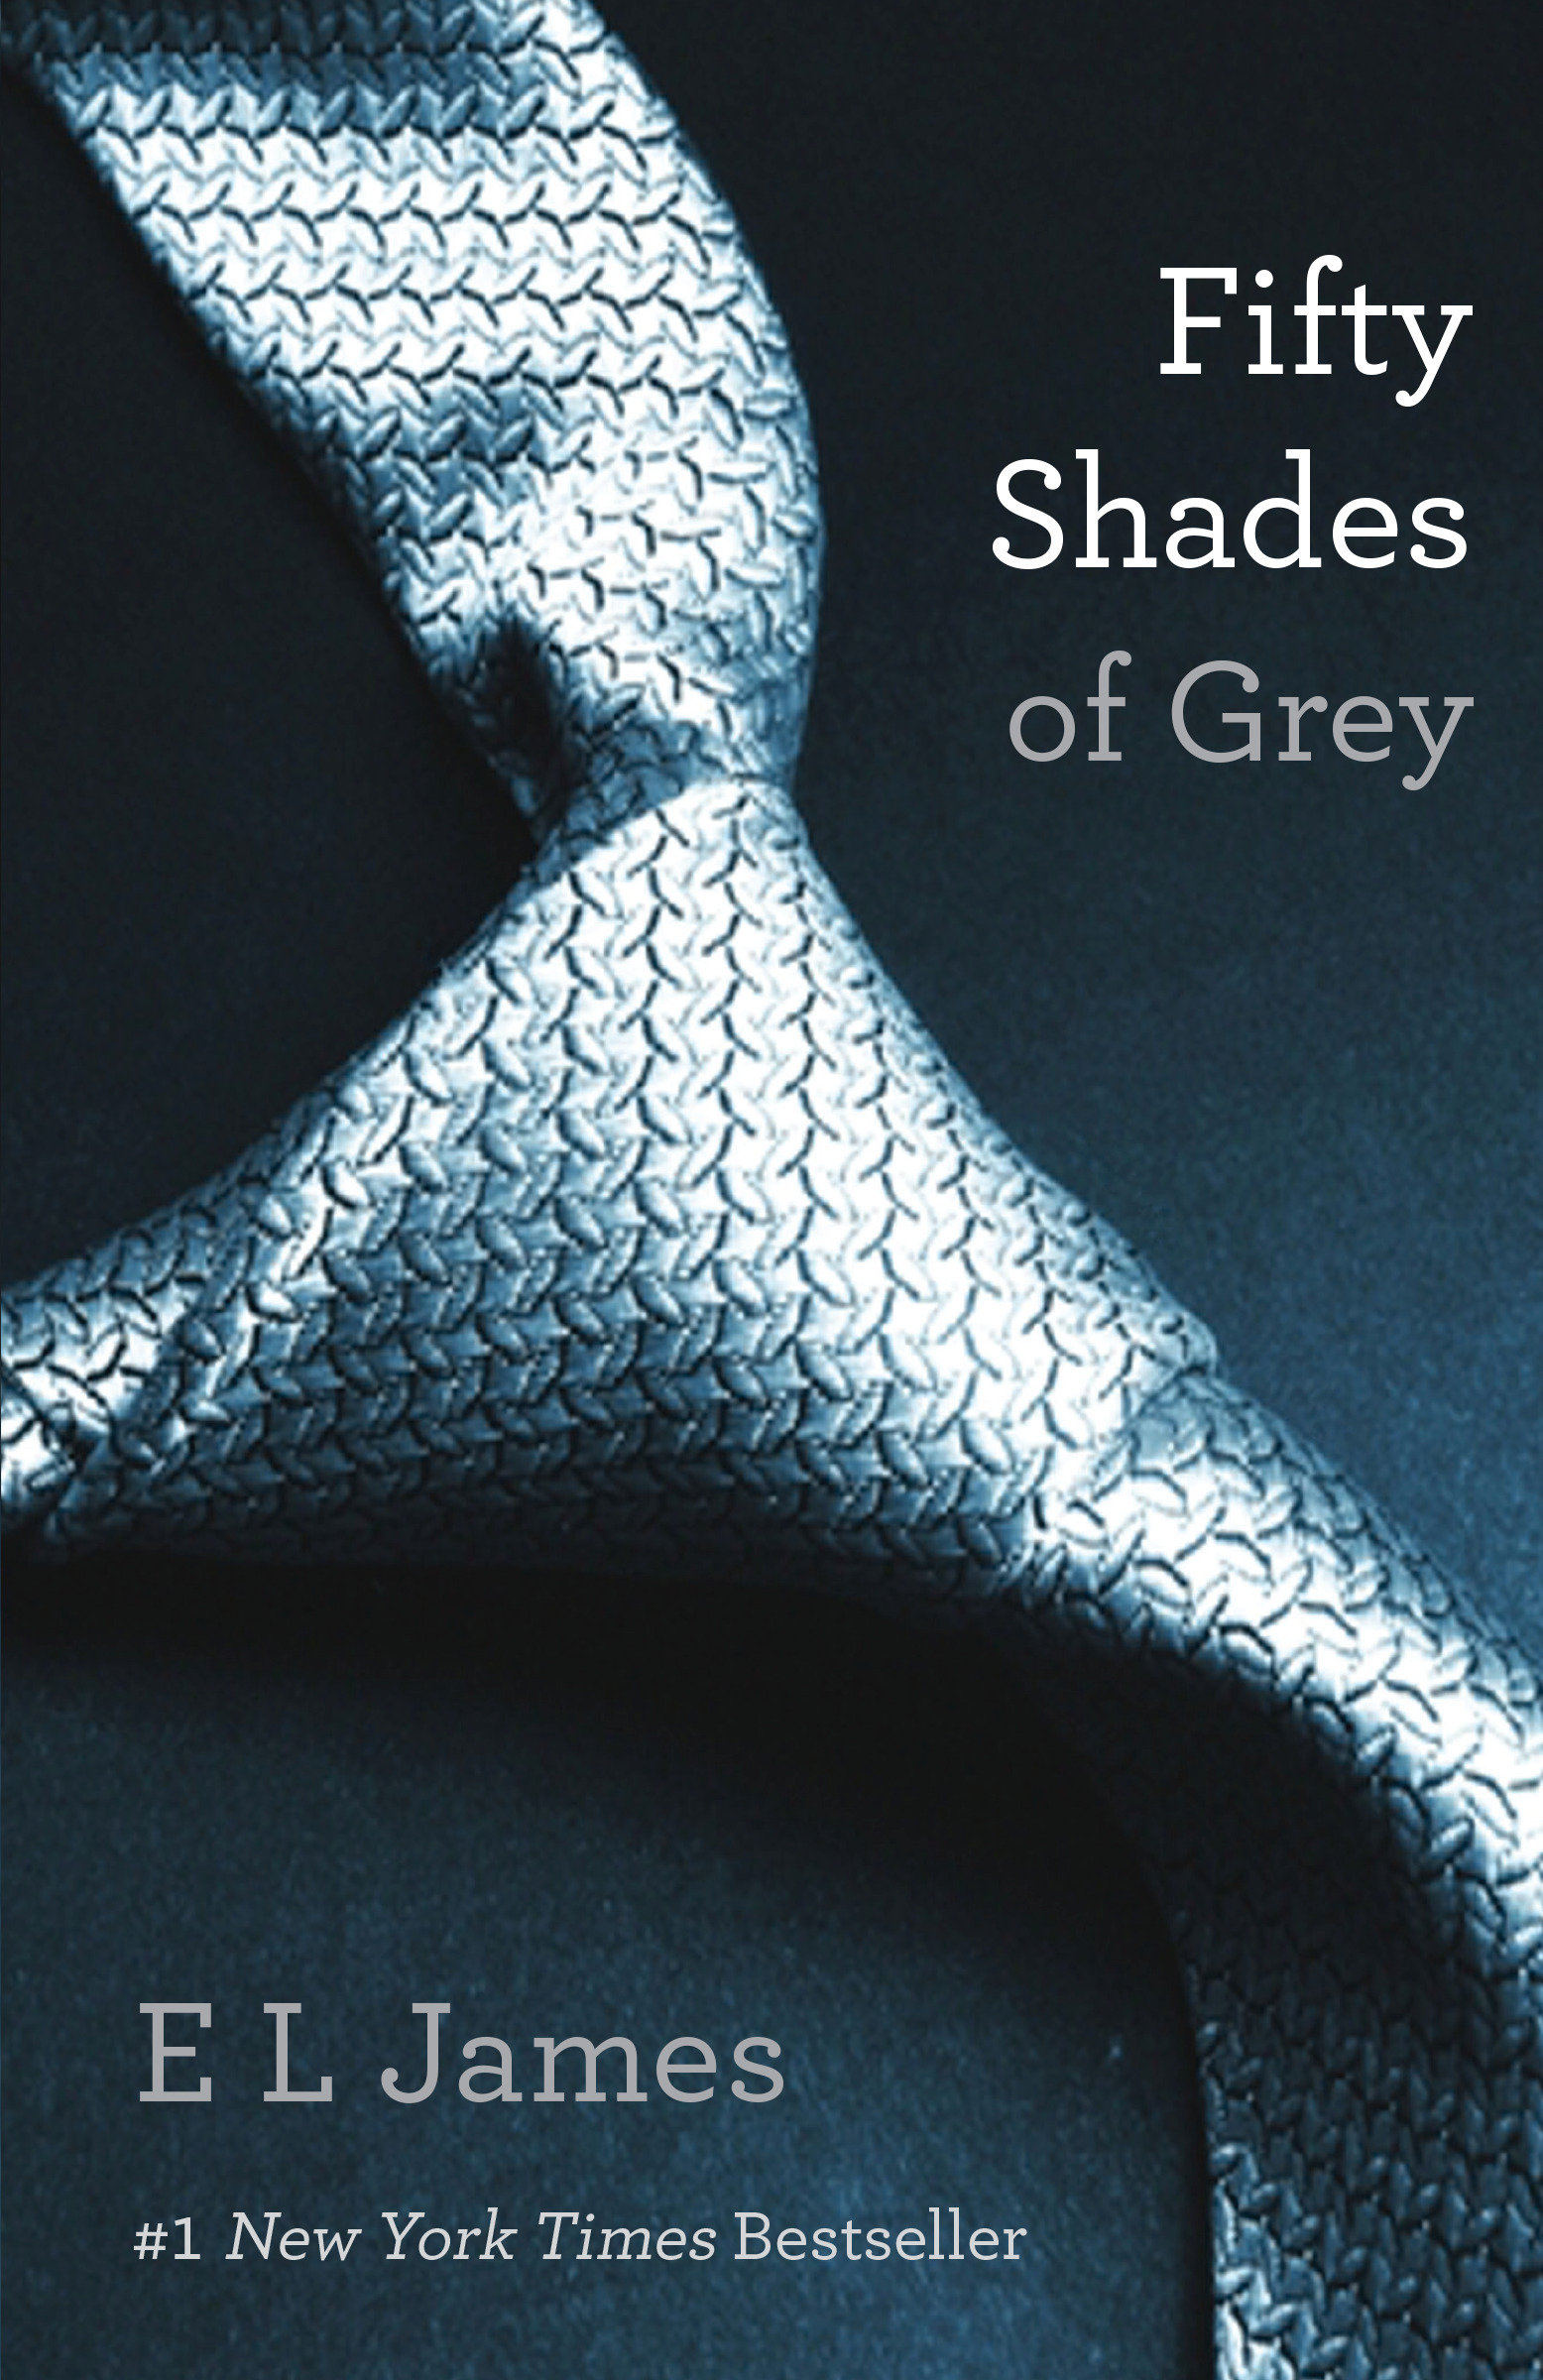 50 shades of grey audiobook free for iphone